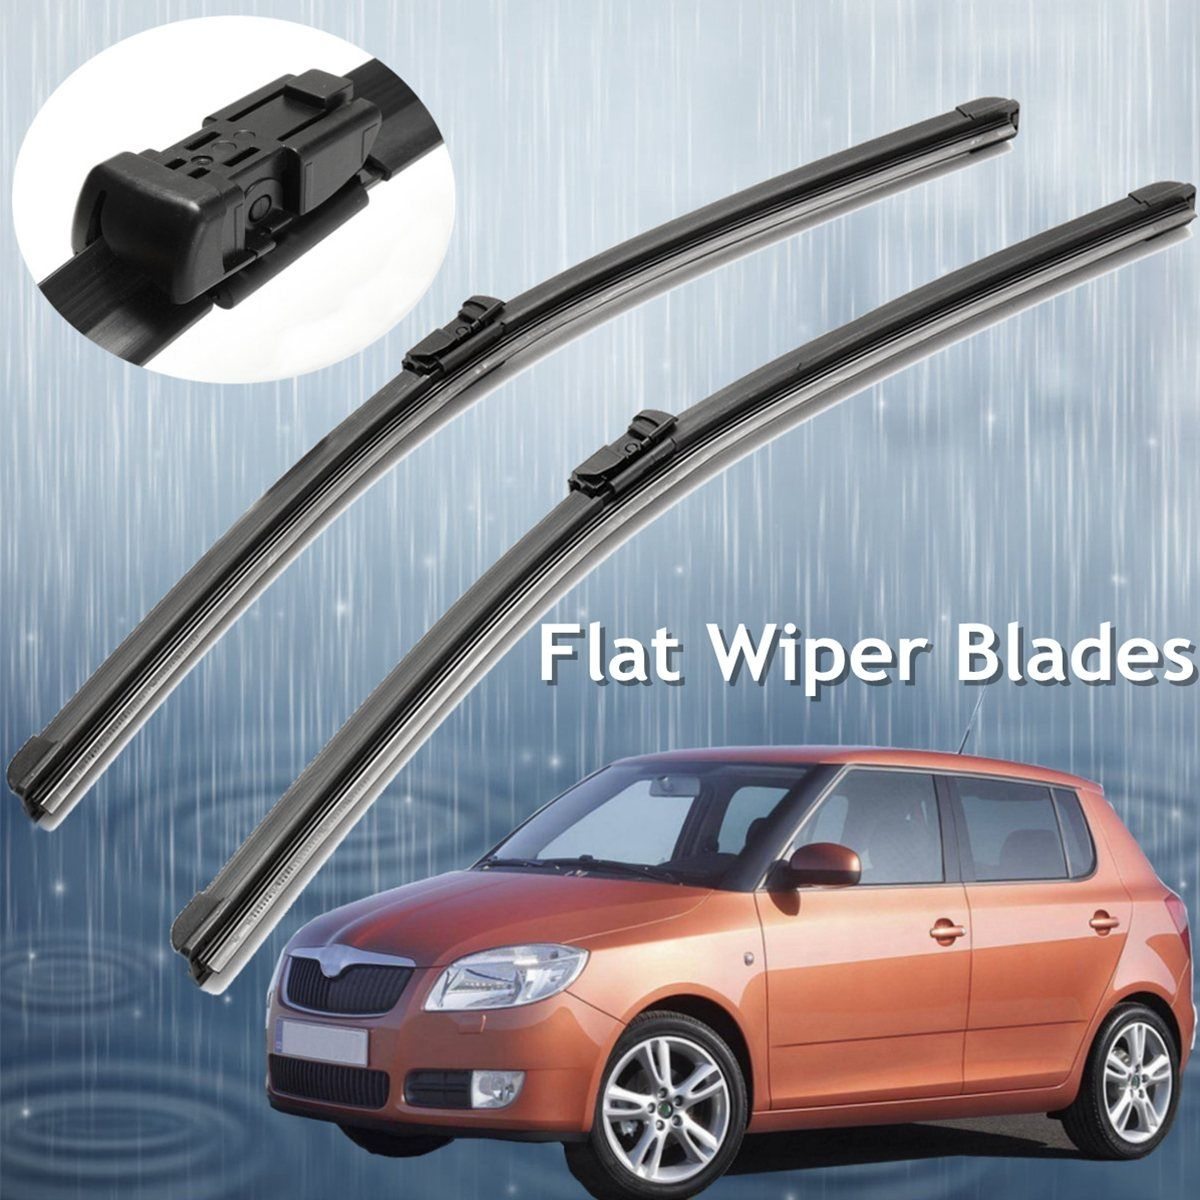 Flat Wiper Blades 21 Push Button Fitment For SKODA FABIA 2007